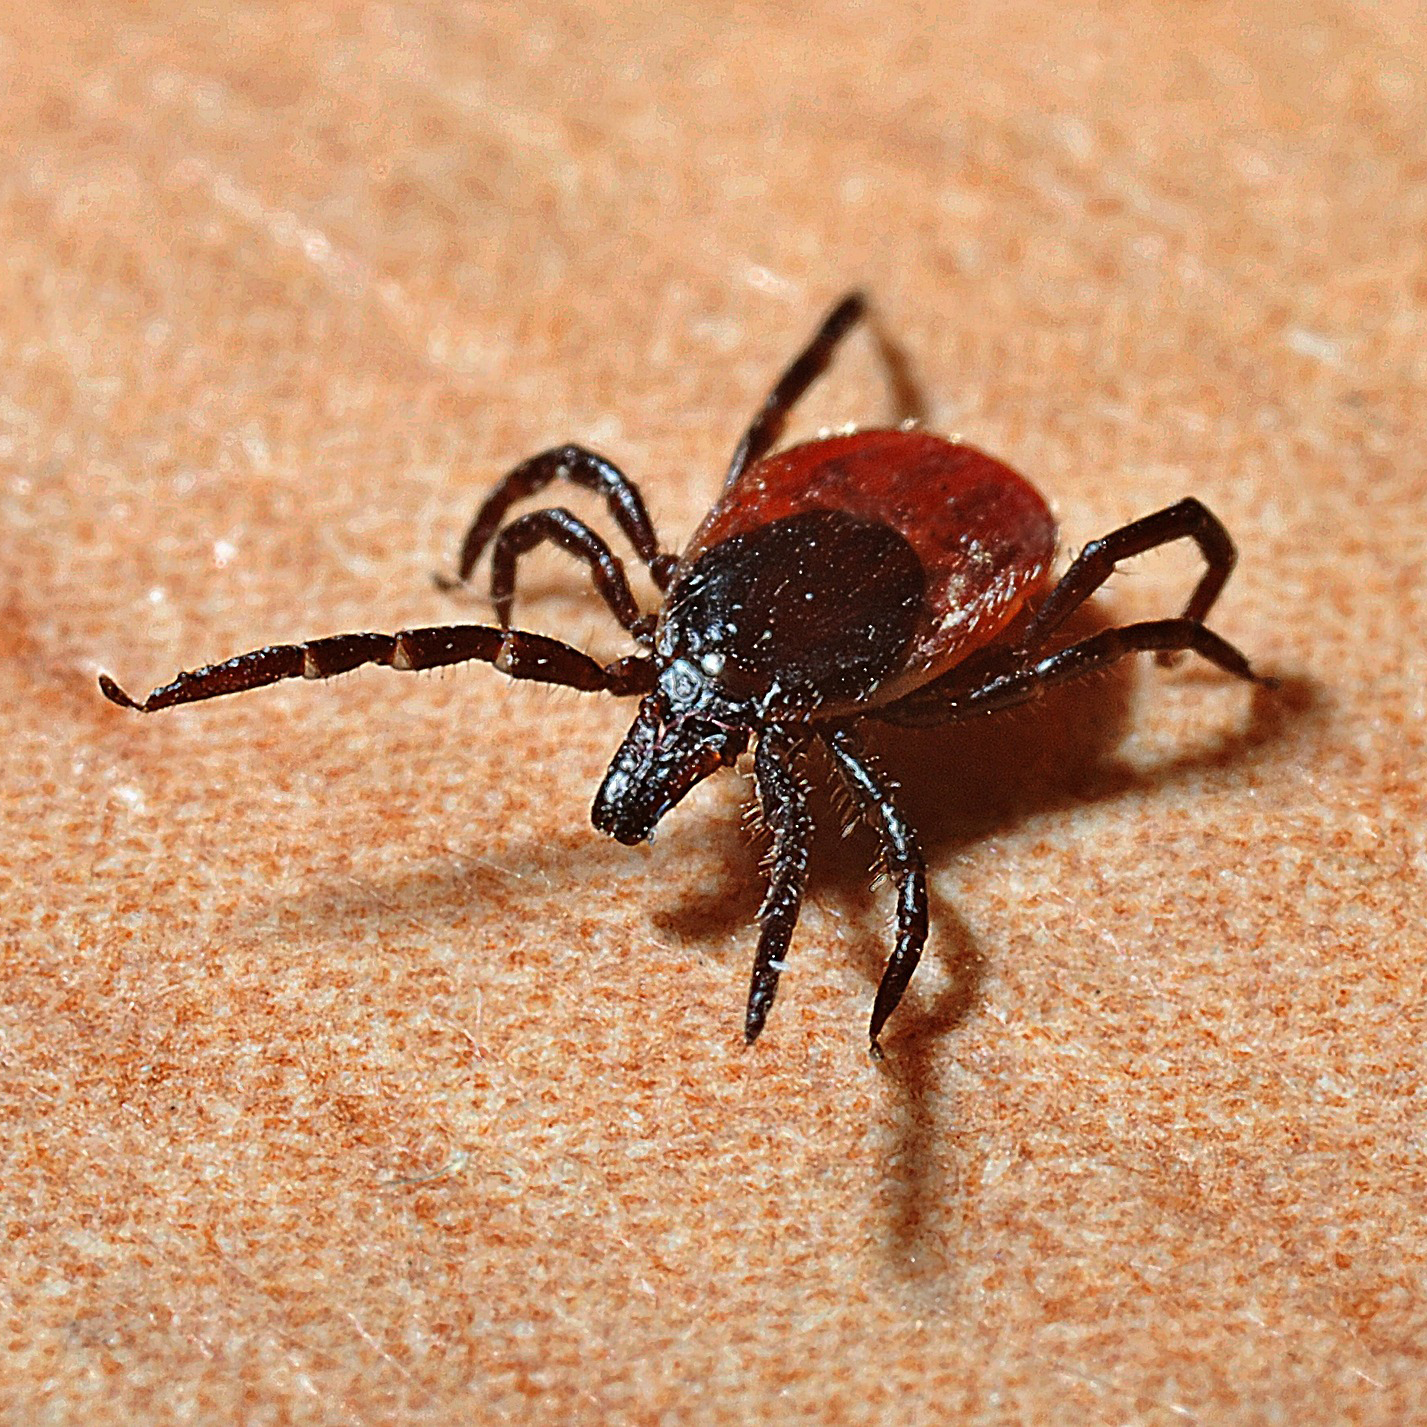 black legged / deer tick